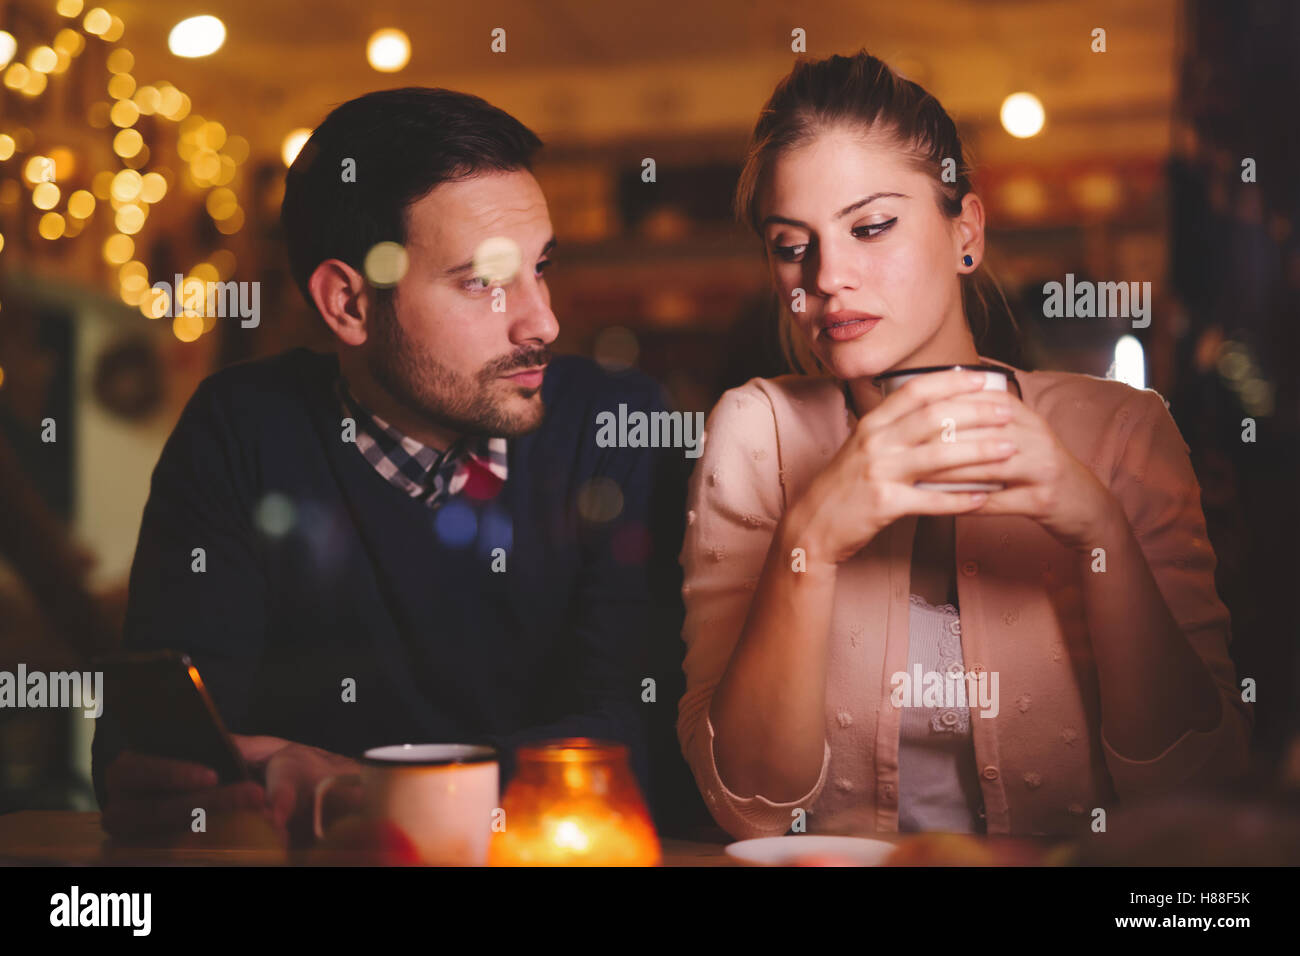 Sad couple having a conflict and relationship problems - Stock Image